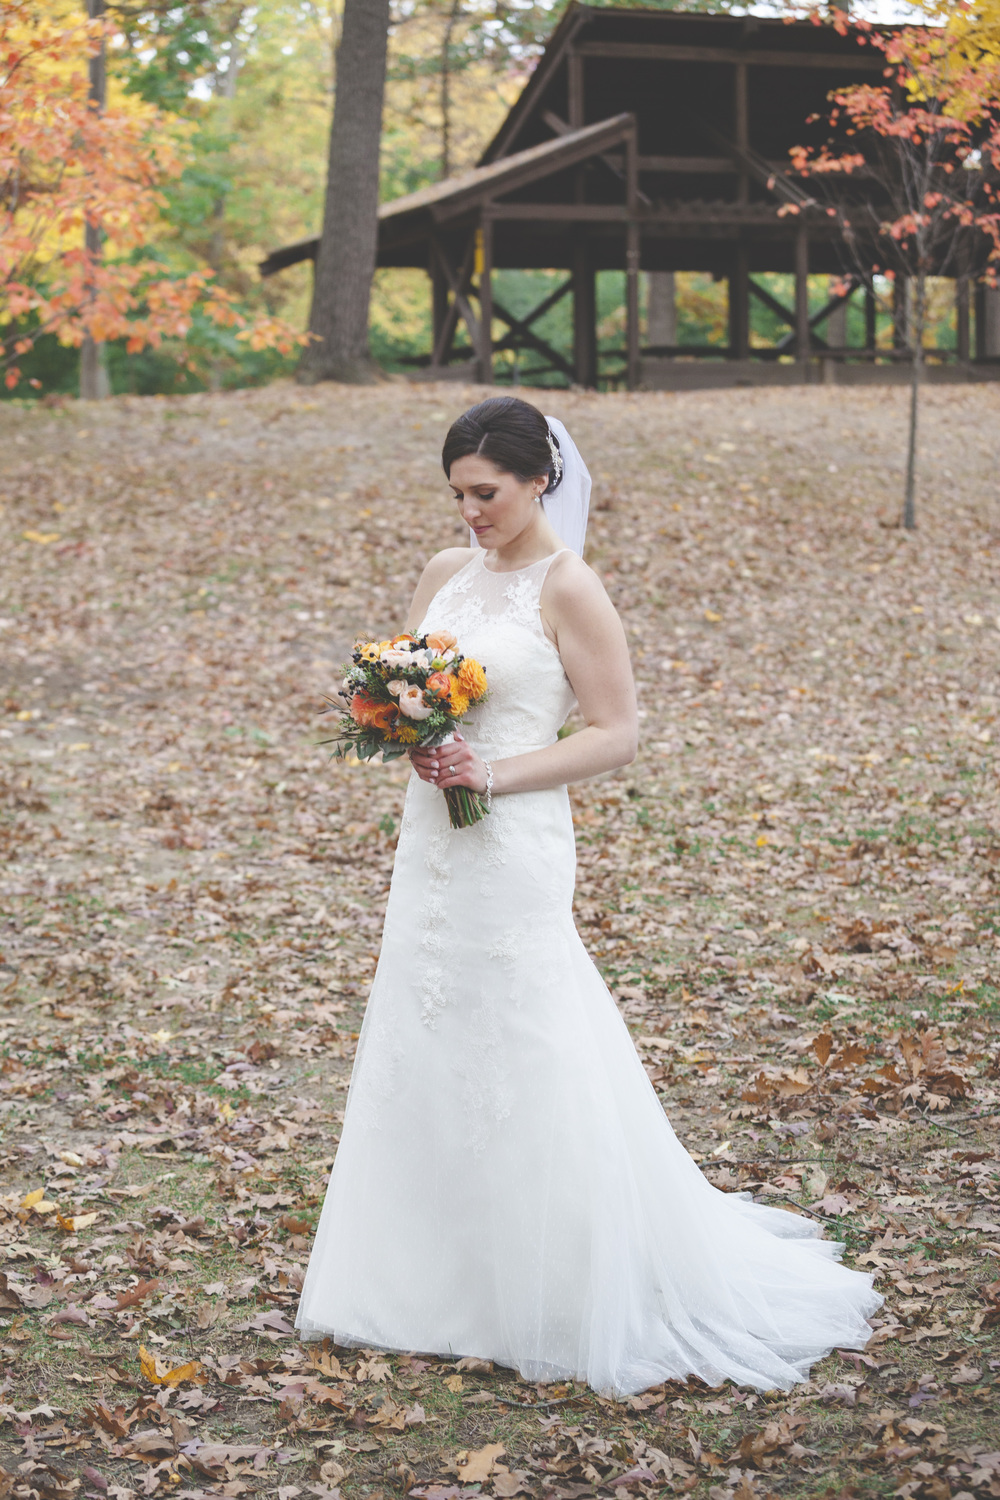 A great autumnal bride shot at Mohawk Park in Brantford along the Grand River.